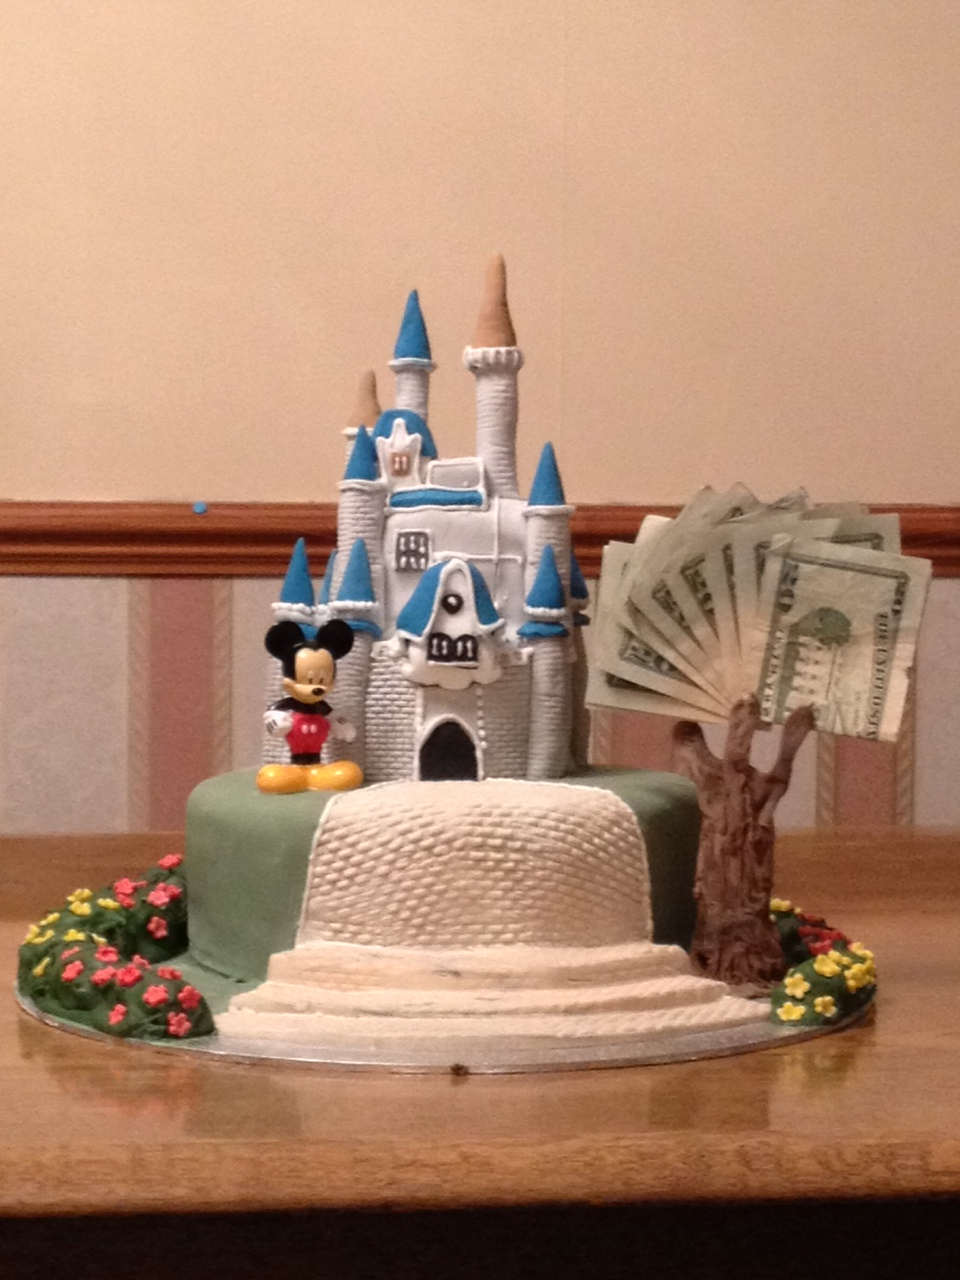 Crafty Cakes and Cards Grahams Disney Birthday Cake